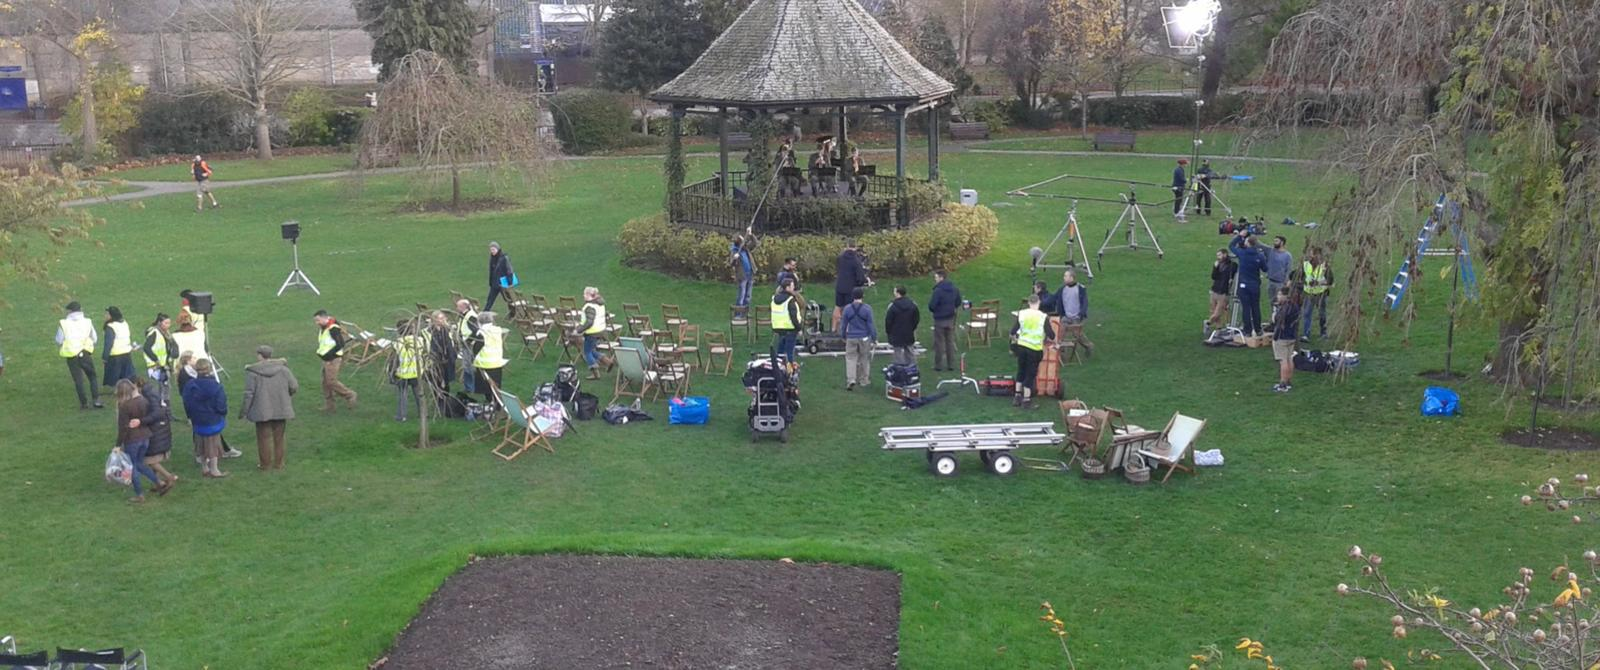 image:filming in Parade Gardens